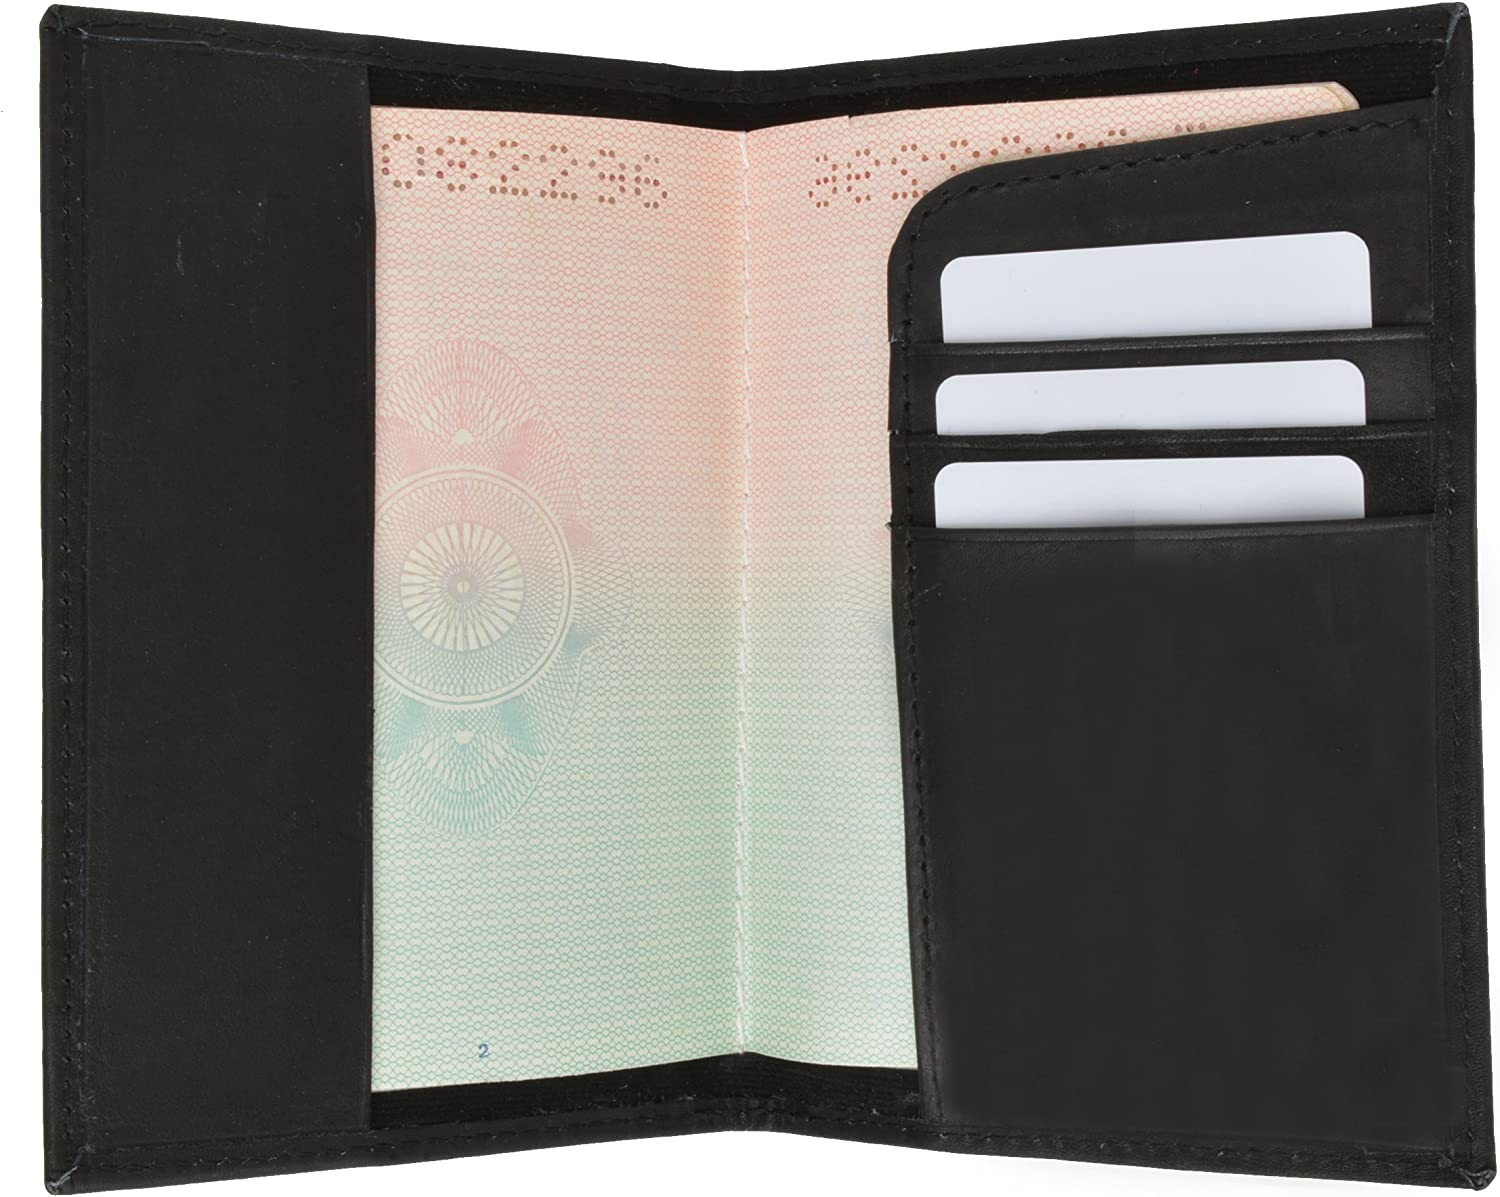 New Genuine Leather Sale item Passport Cover Purchase Gol Travel Wallet Case Holder